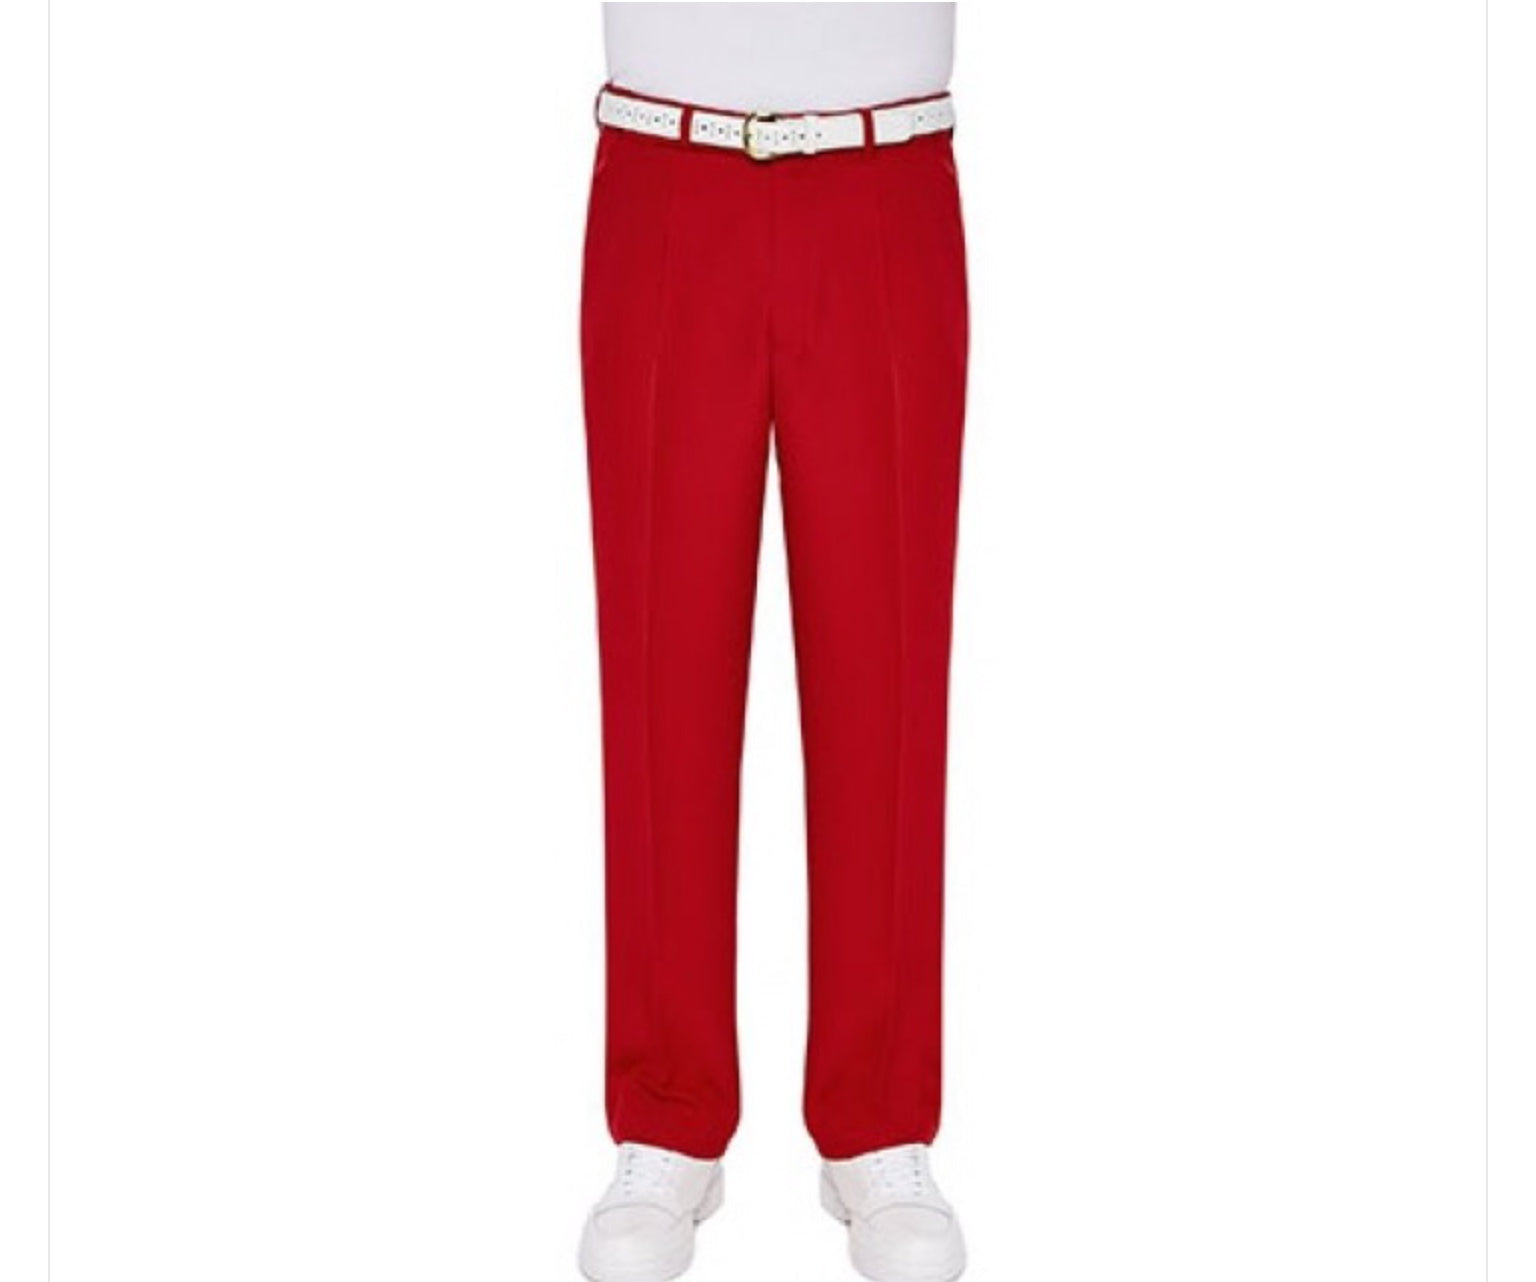 City Club Diplomat Skip Lawn Bowls Pants Regular Fit